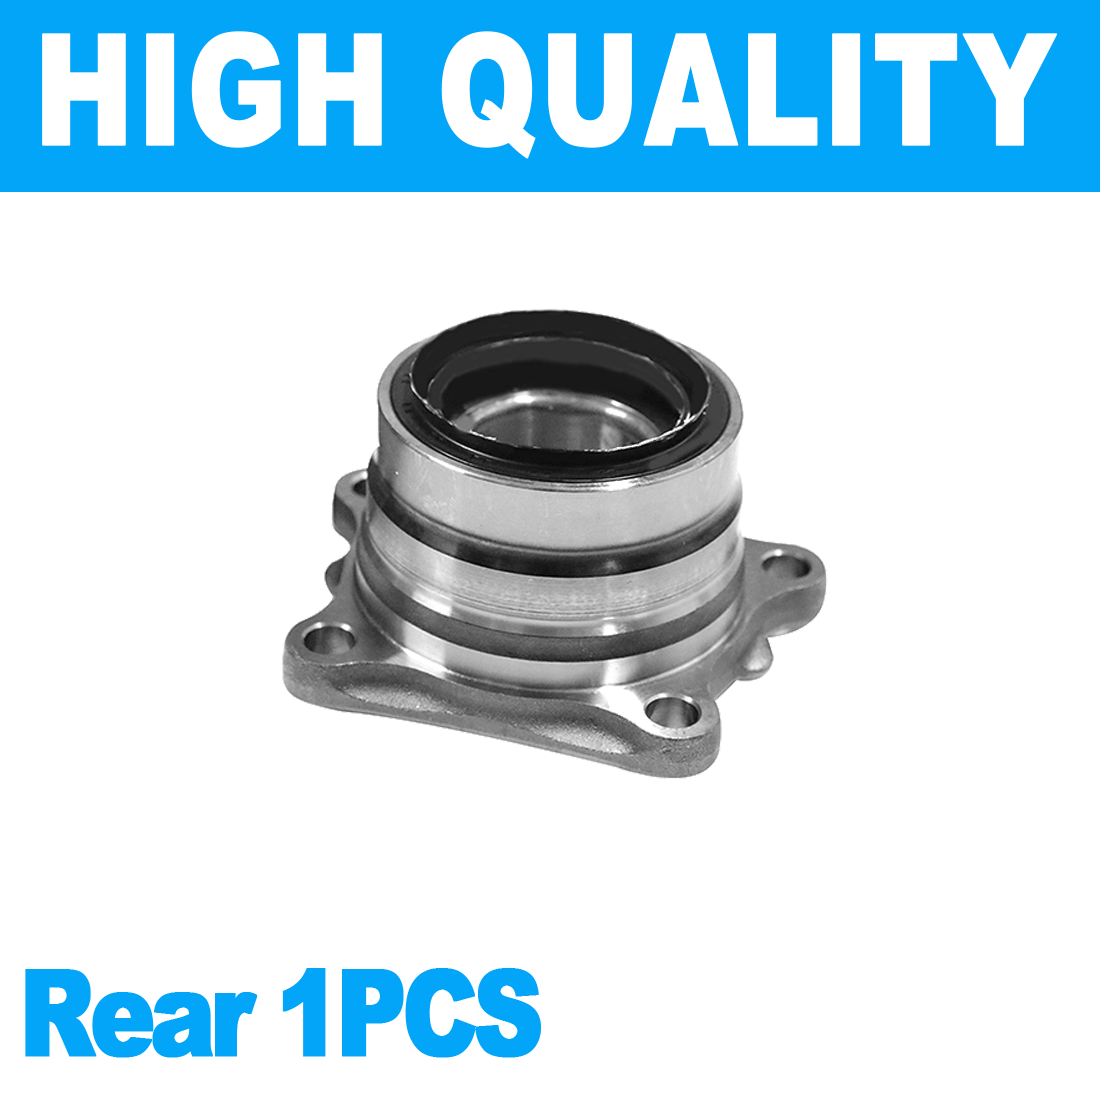 hight resolution of details about 1pcs rear wheel hub bearing assembly for toyota toyota rav4 96 00 awd fwd